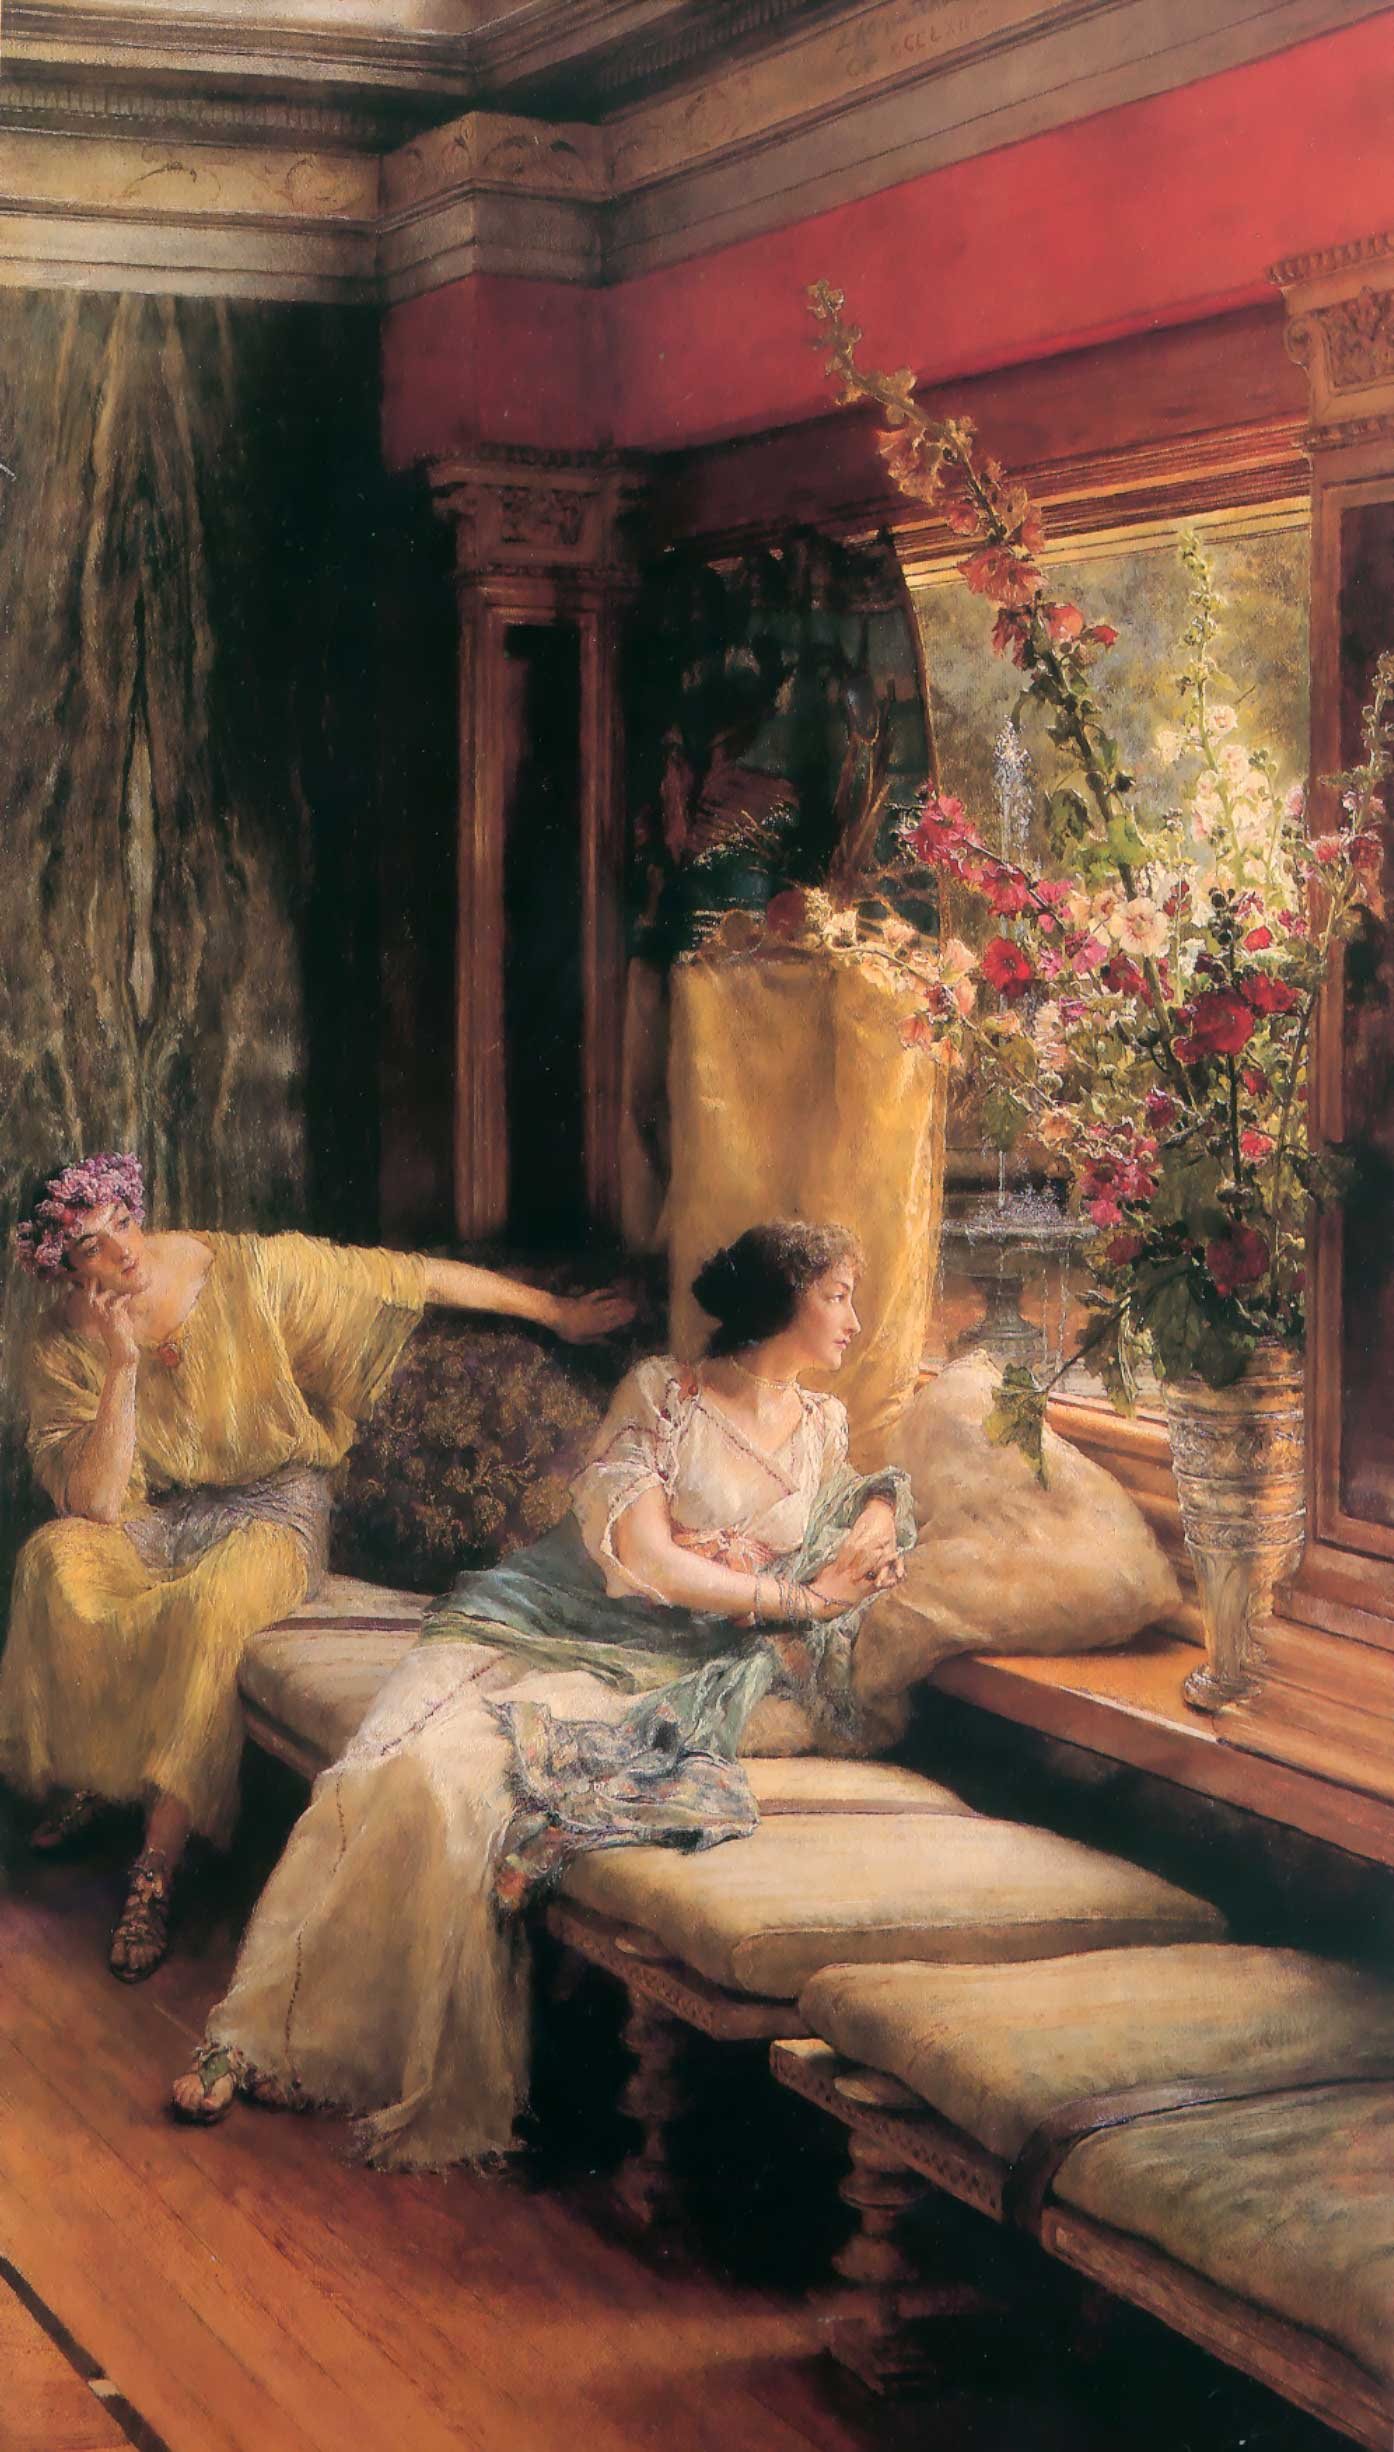 SIR LAWRENCE ALMA TADEMA — Vain Courtship, 1900.